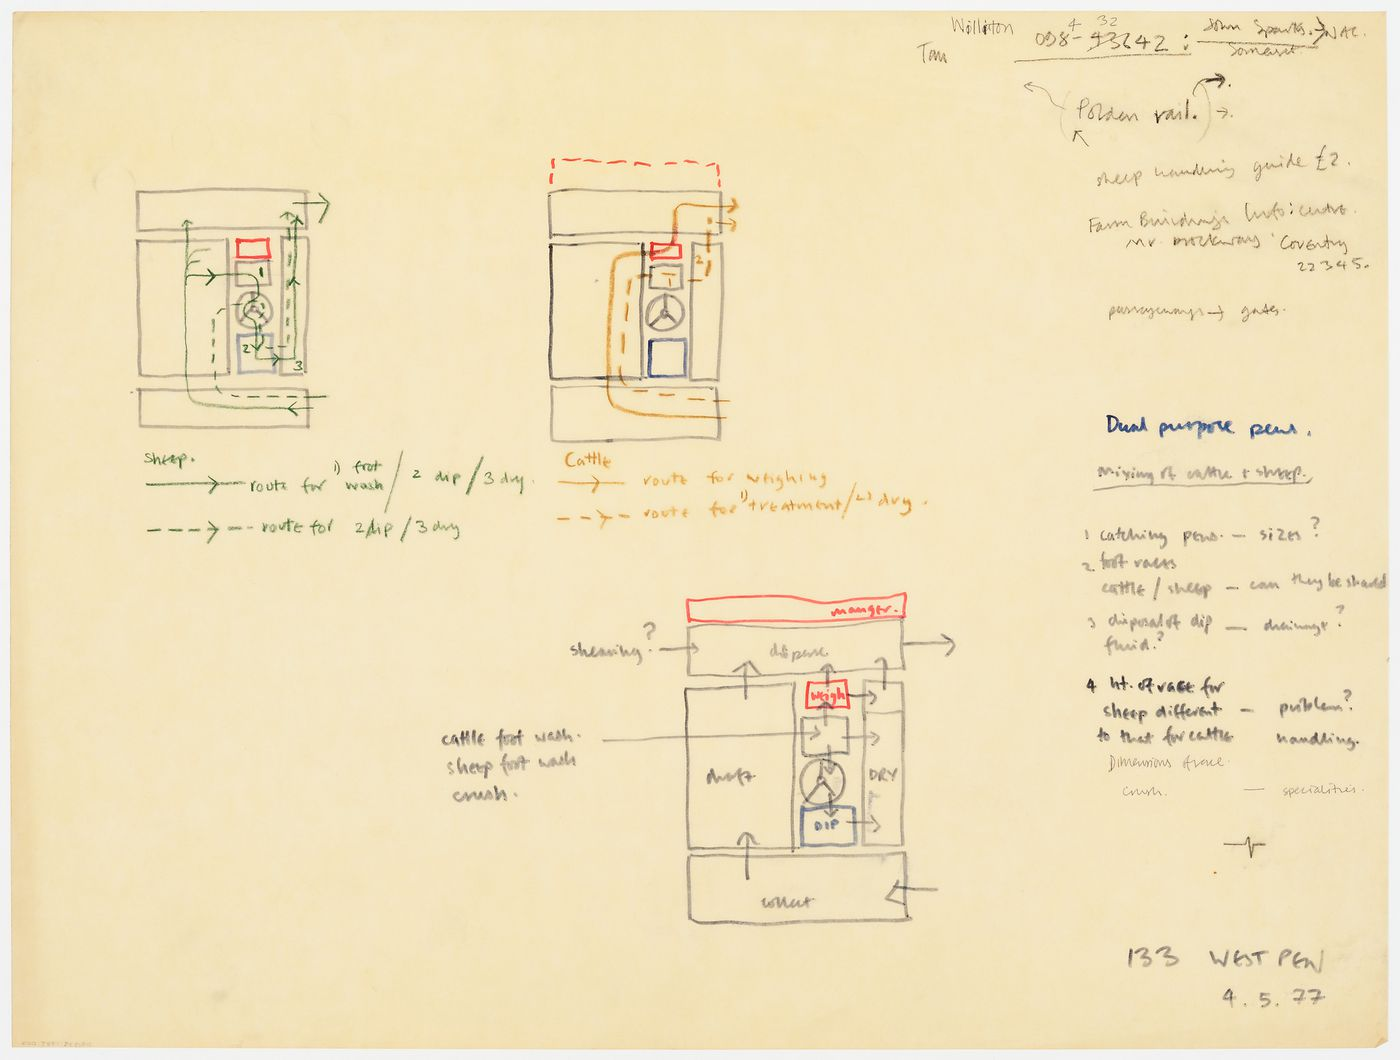 Diagrammatic plans for dual purpose livestock pens (document from Westpen project records)